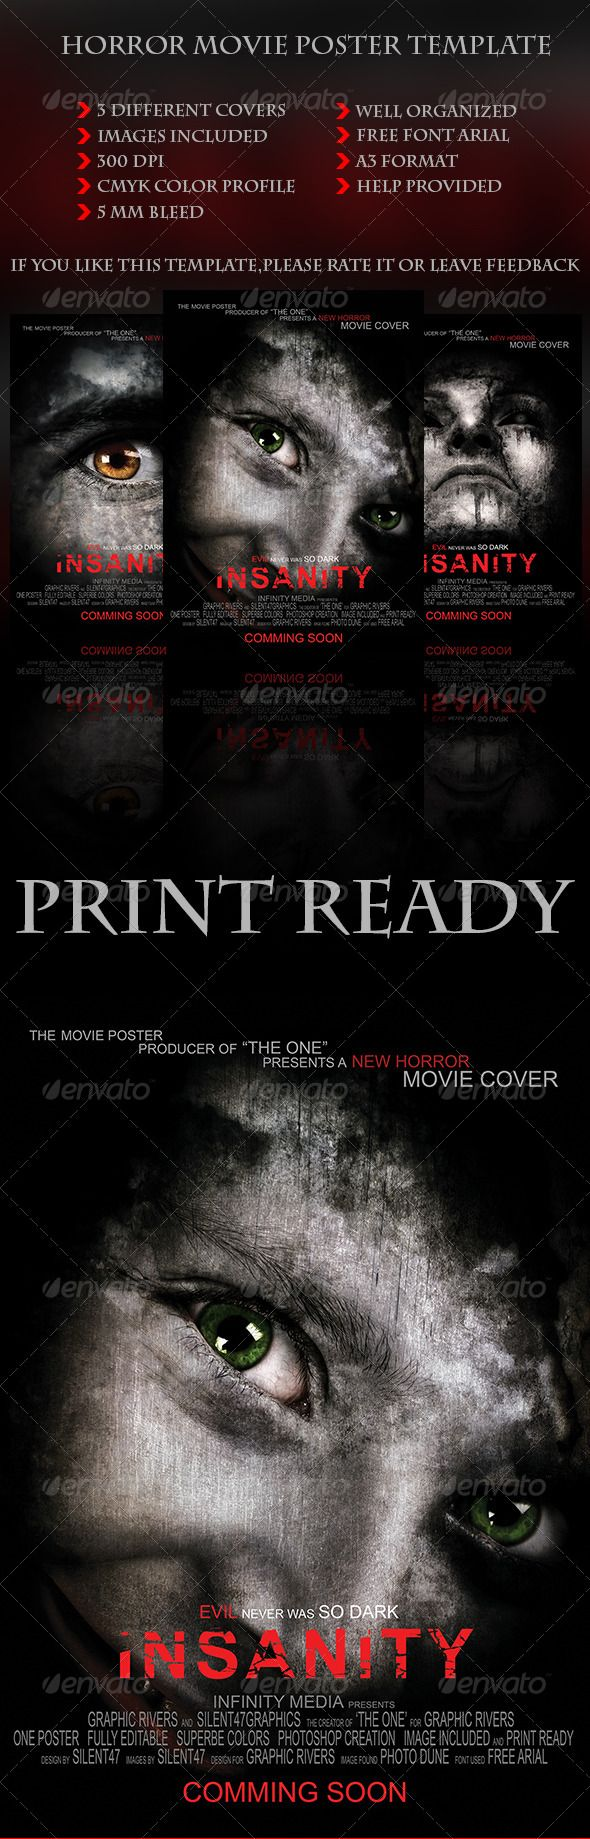 horror movie poster template photoshop psd death cover available here https